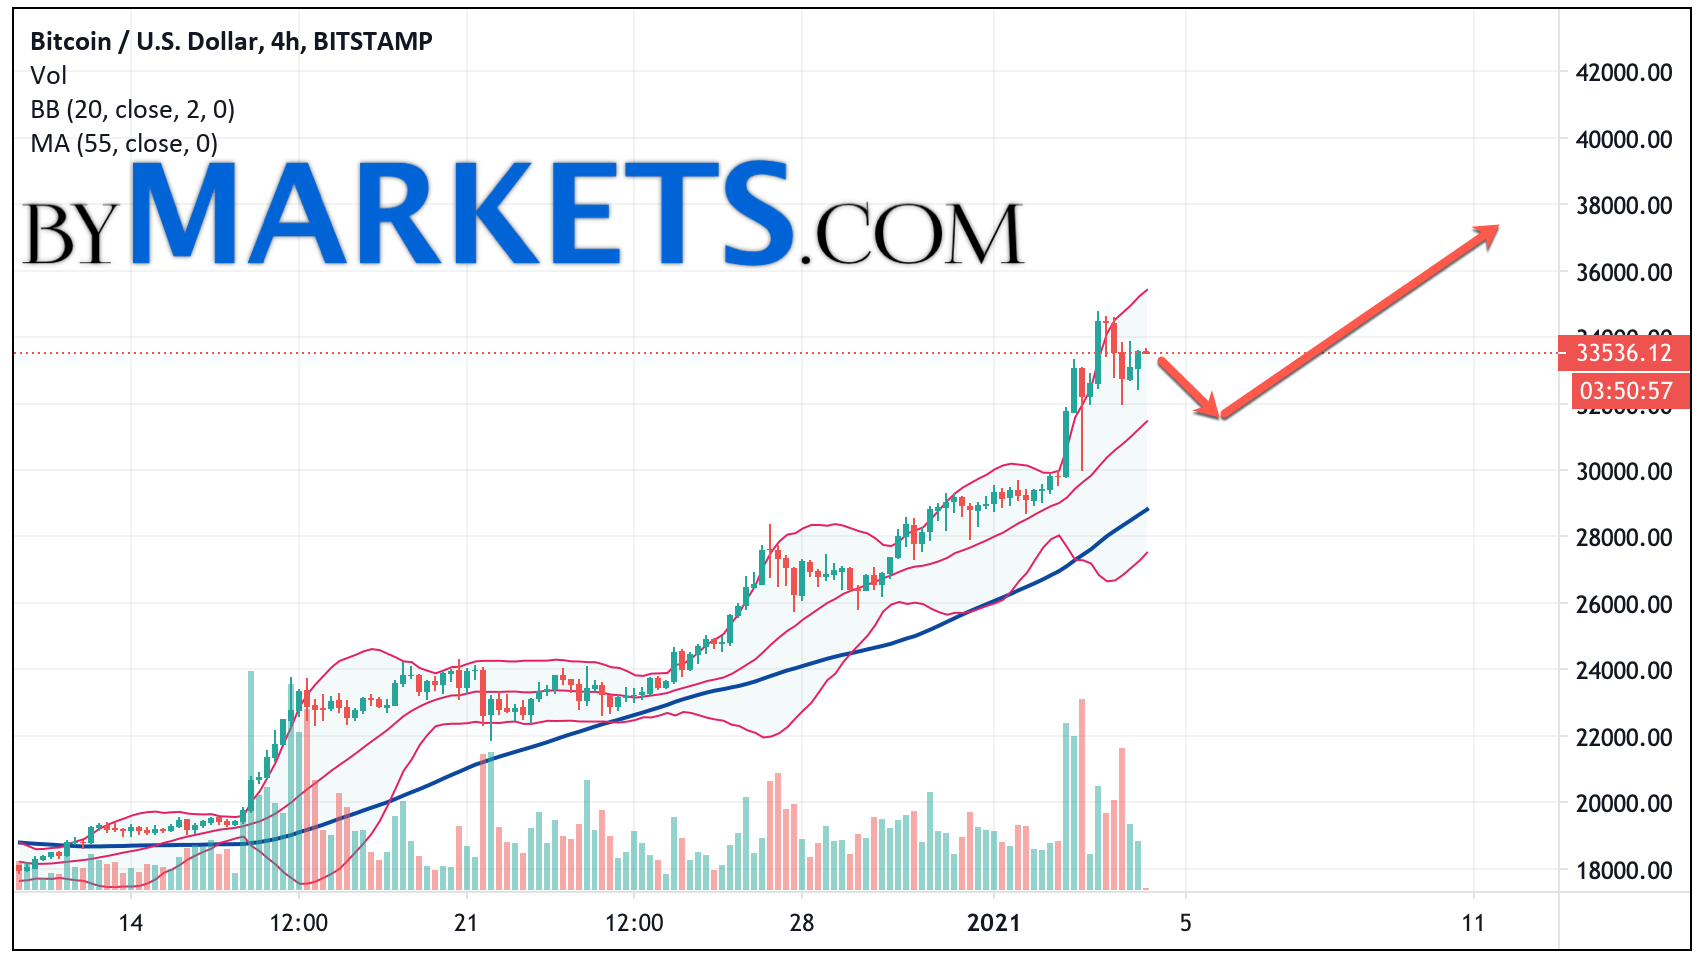 Bitcoin Btc Usd Forecast And Analysis On January 5 2021 Bymarkets Com